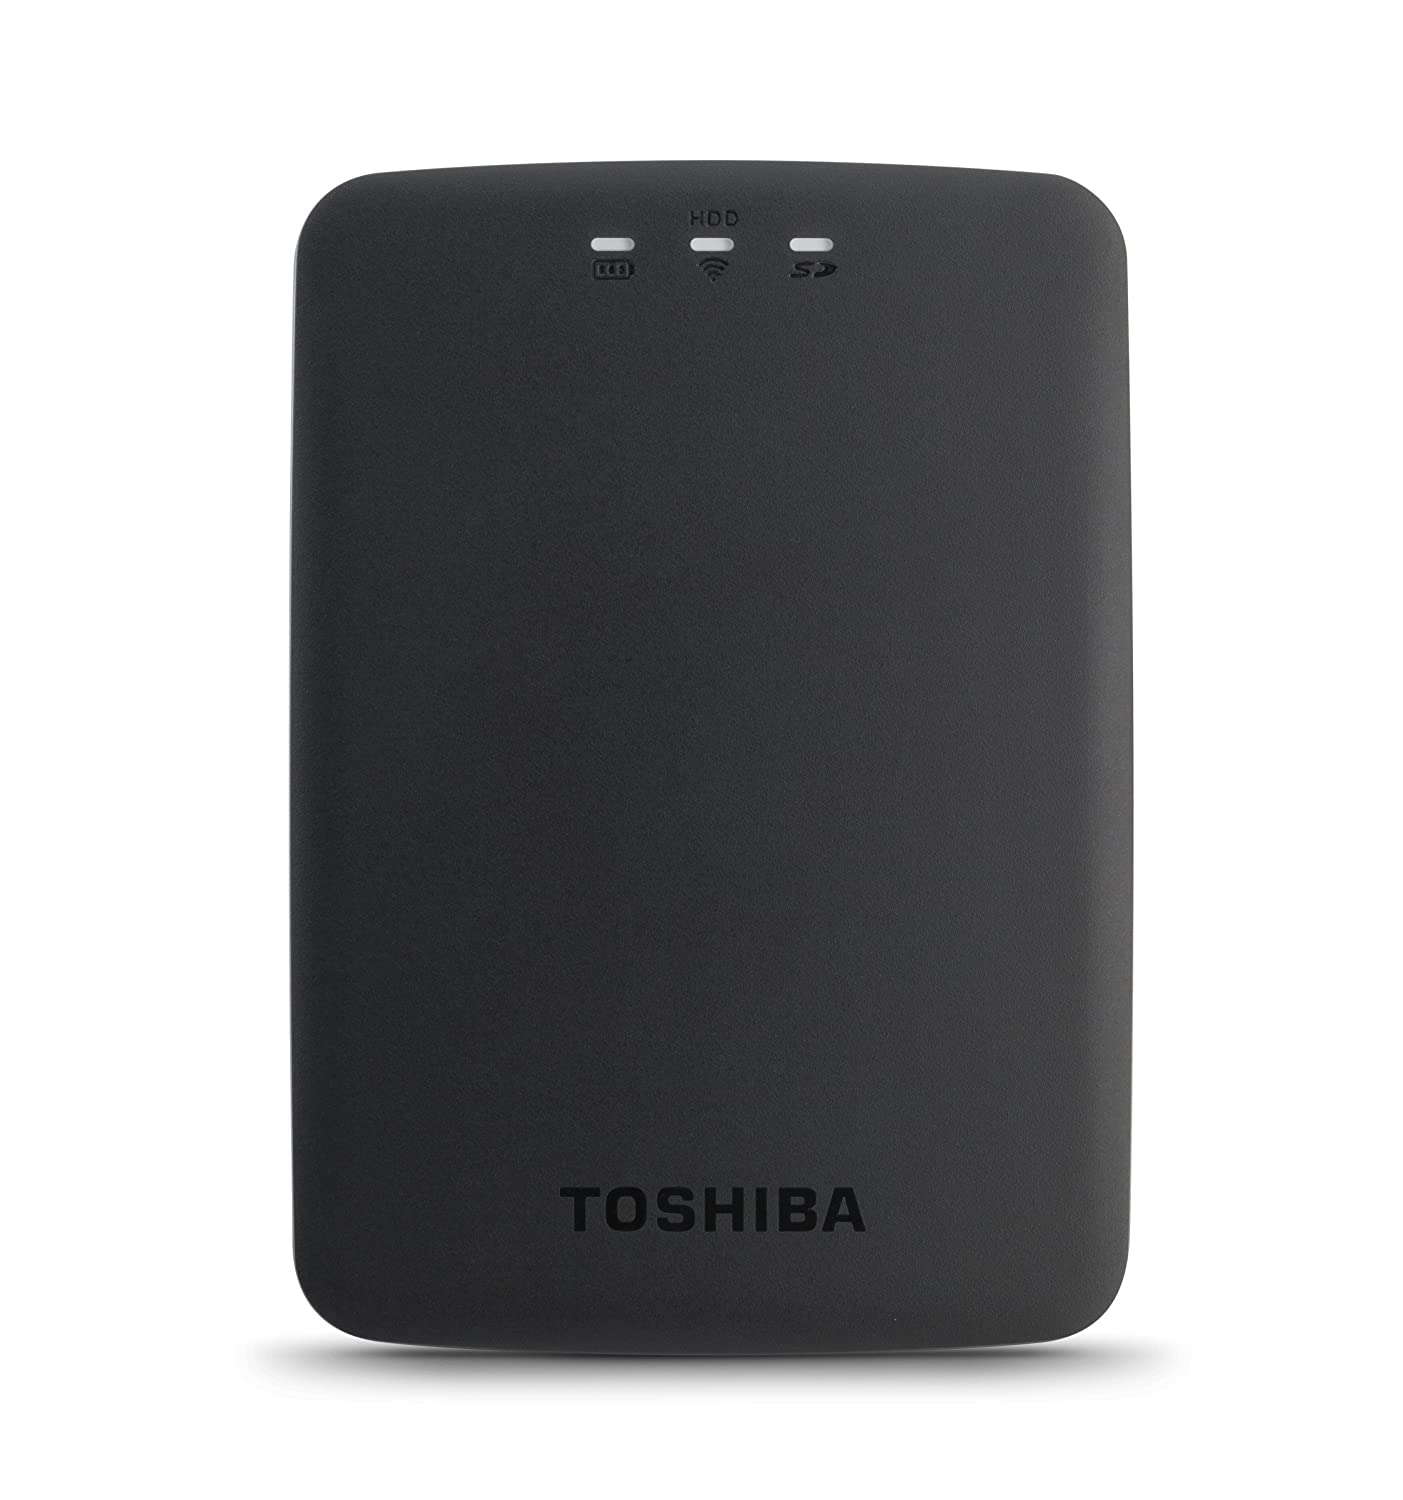 Wd My Passport Wireless Pro Speed Nbox Hdtv Recorder Nc Best Hd Tv In 2018 Home Smart Tracking Full Hd Ip Camera: Top 10 Best Wireless External Drives For Smartphones And